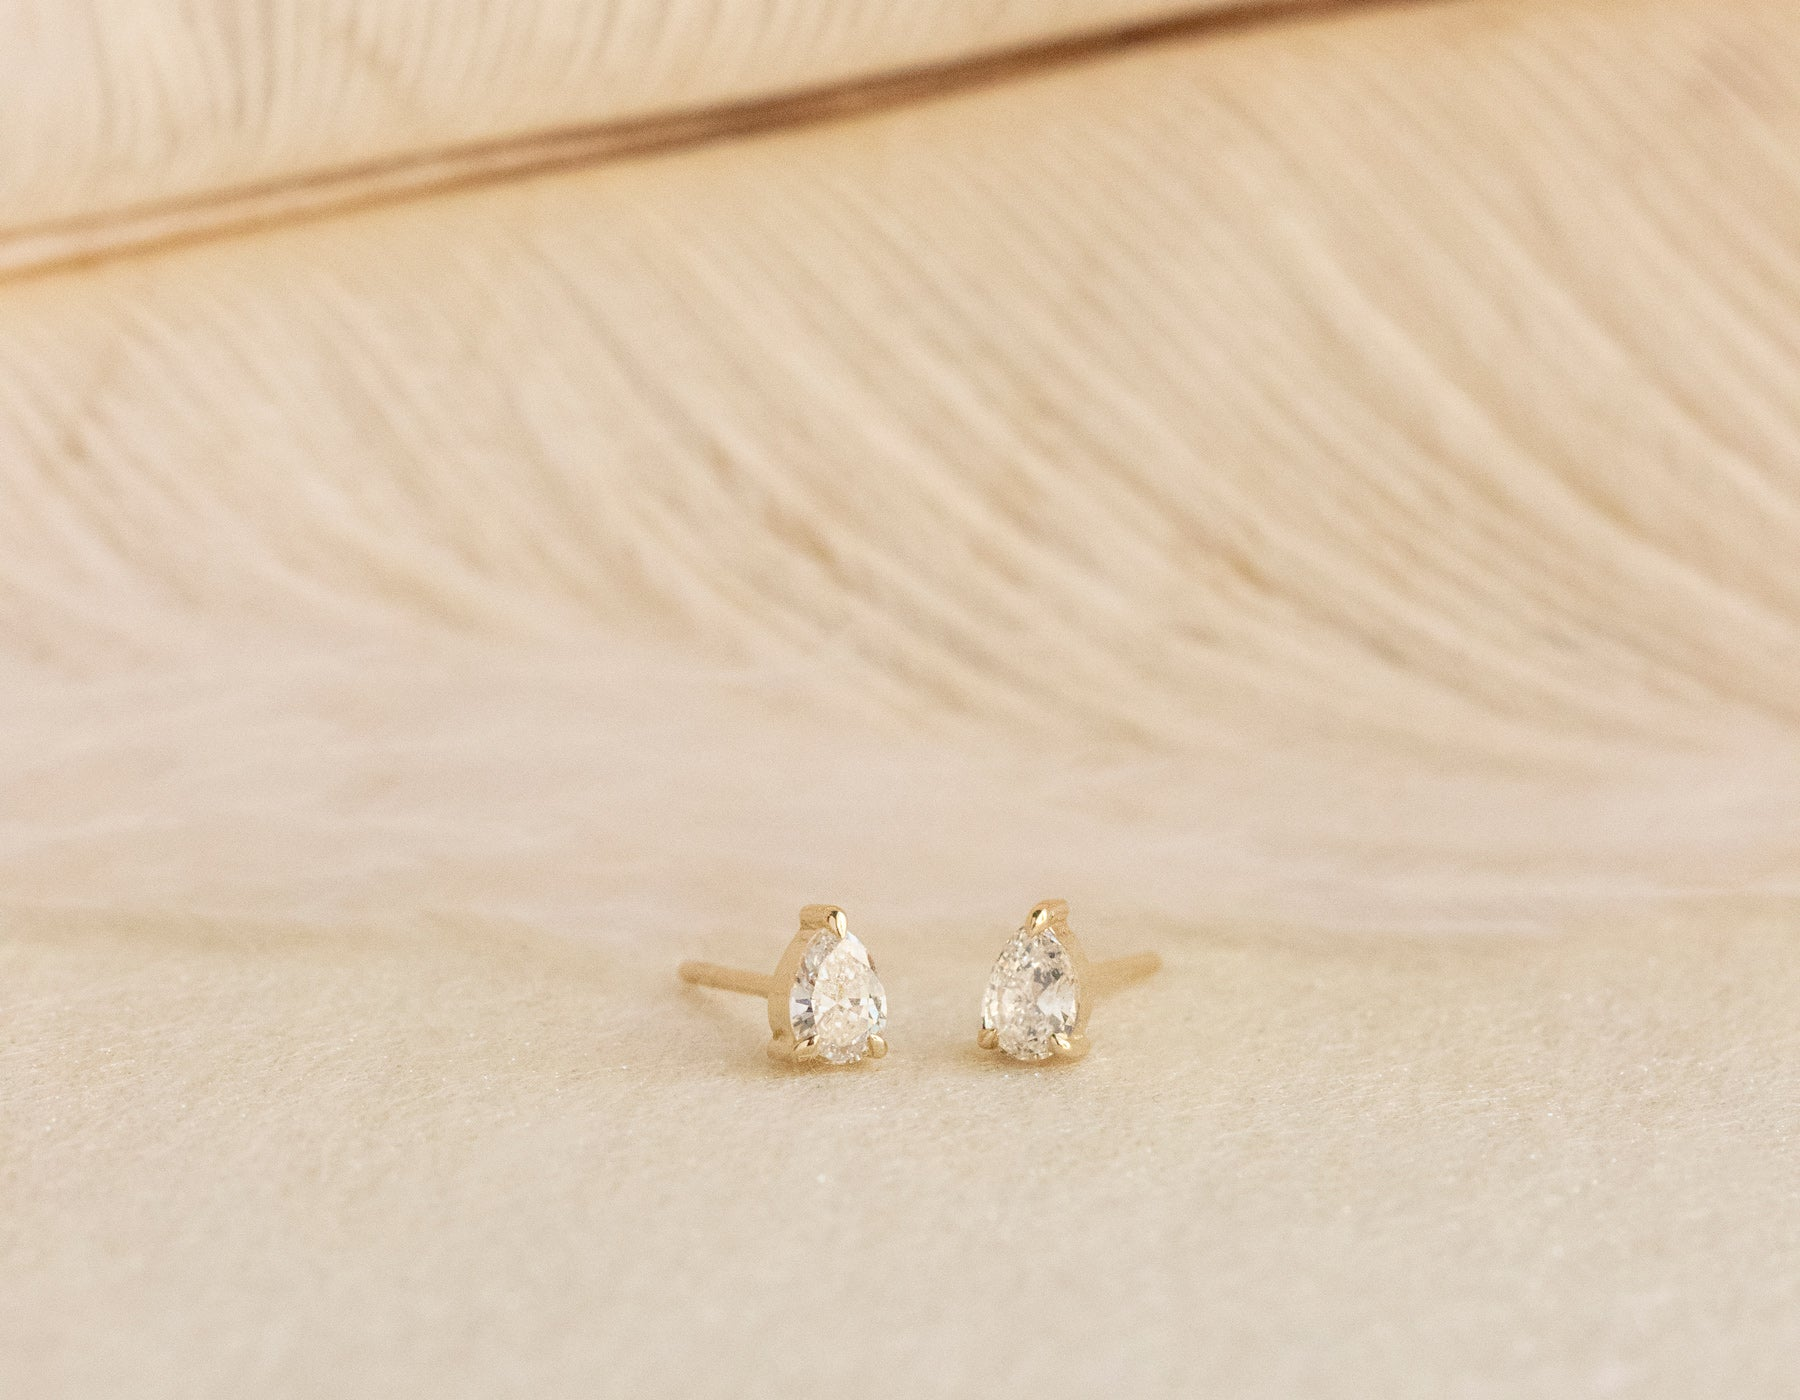 Vrai & Oro elegant minimalist Pear diamond earrings .30 ct studs 14k solid gold Vrai & oro